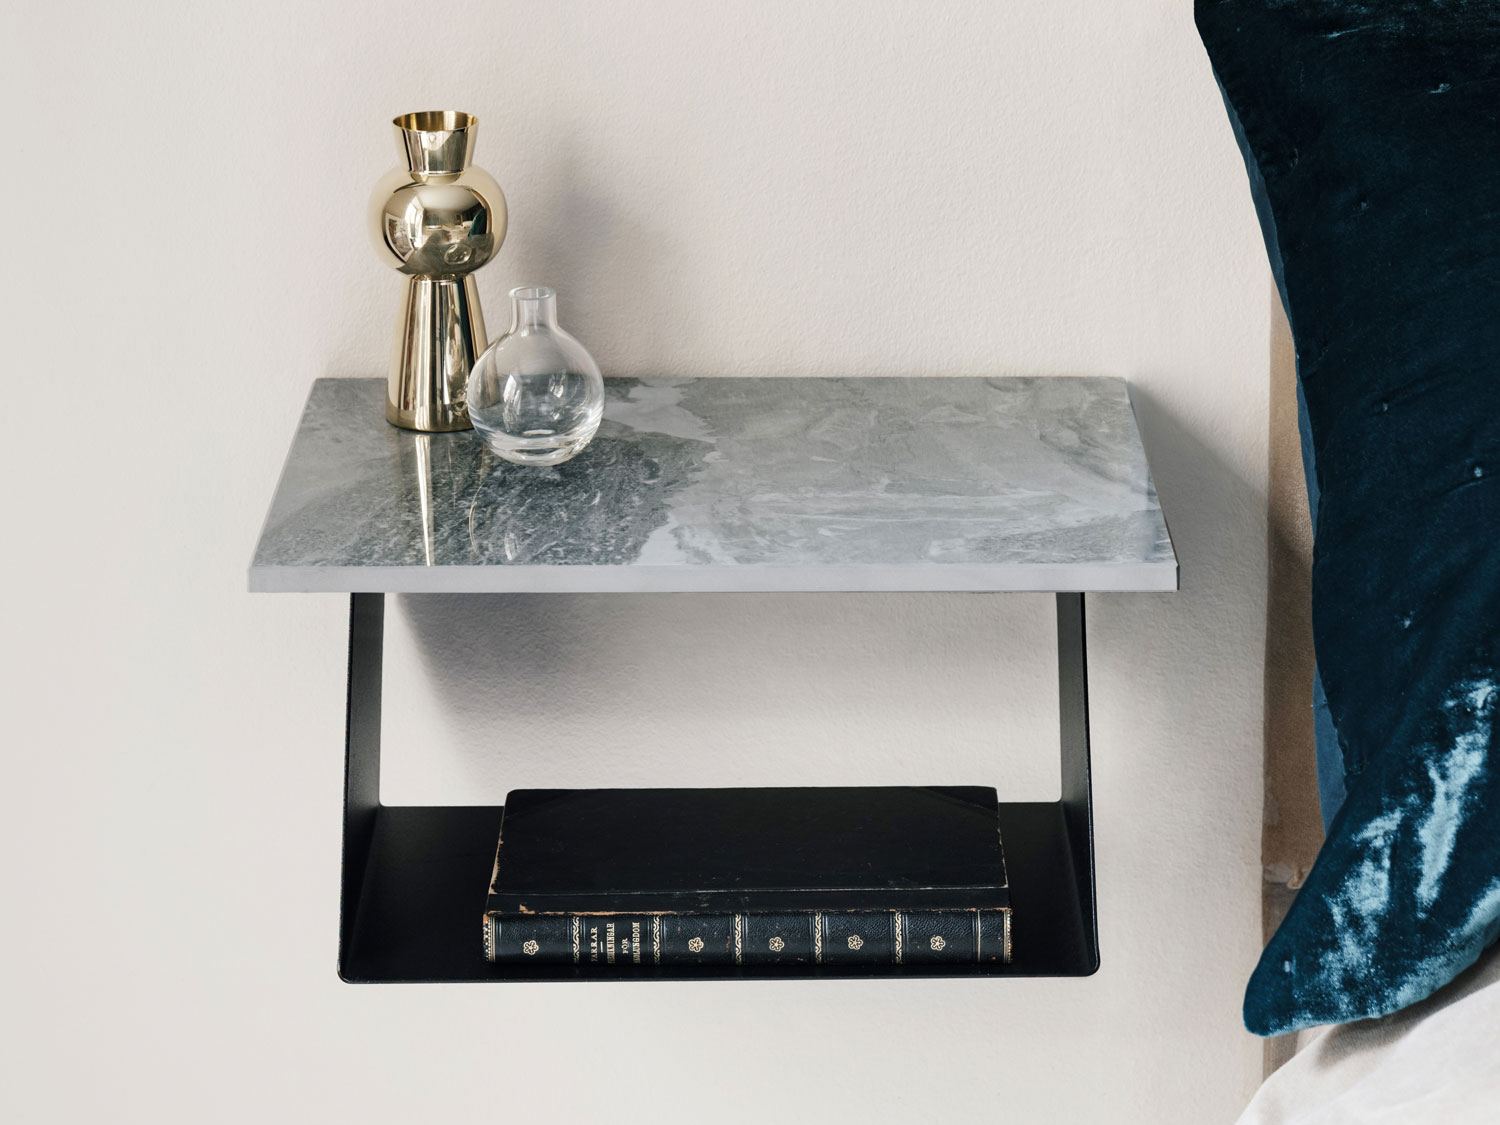 This Wall Shelf Design Works Perfectly As A Night Stand Edgy Shelf By Designer Malin Lundmark For Maze Interior 3000